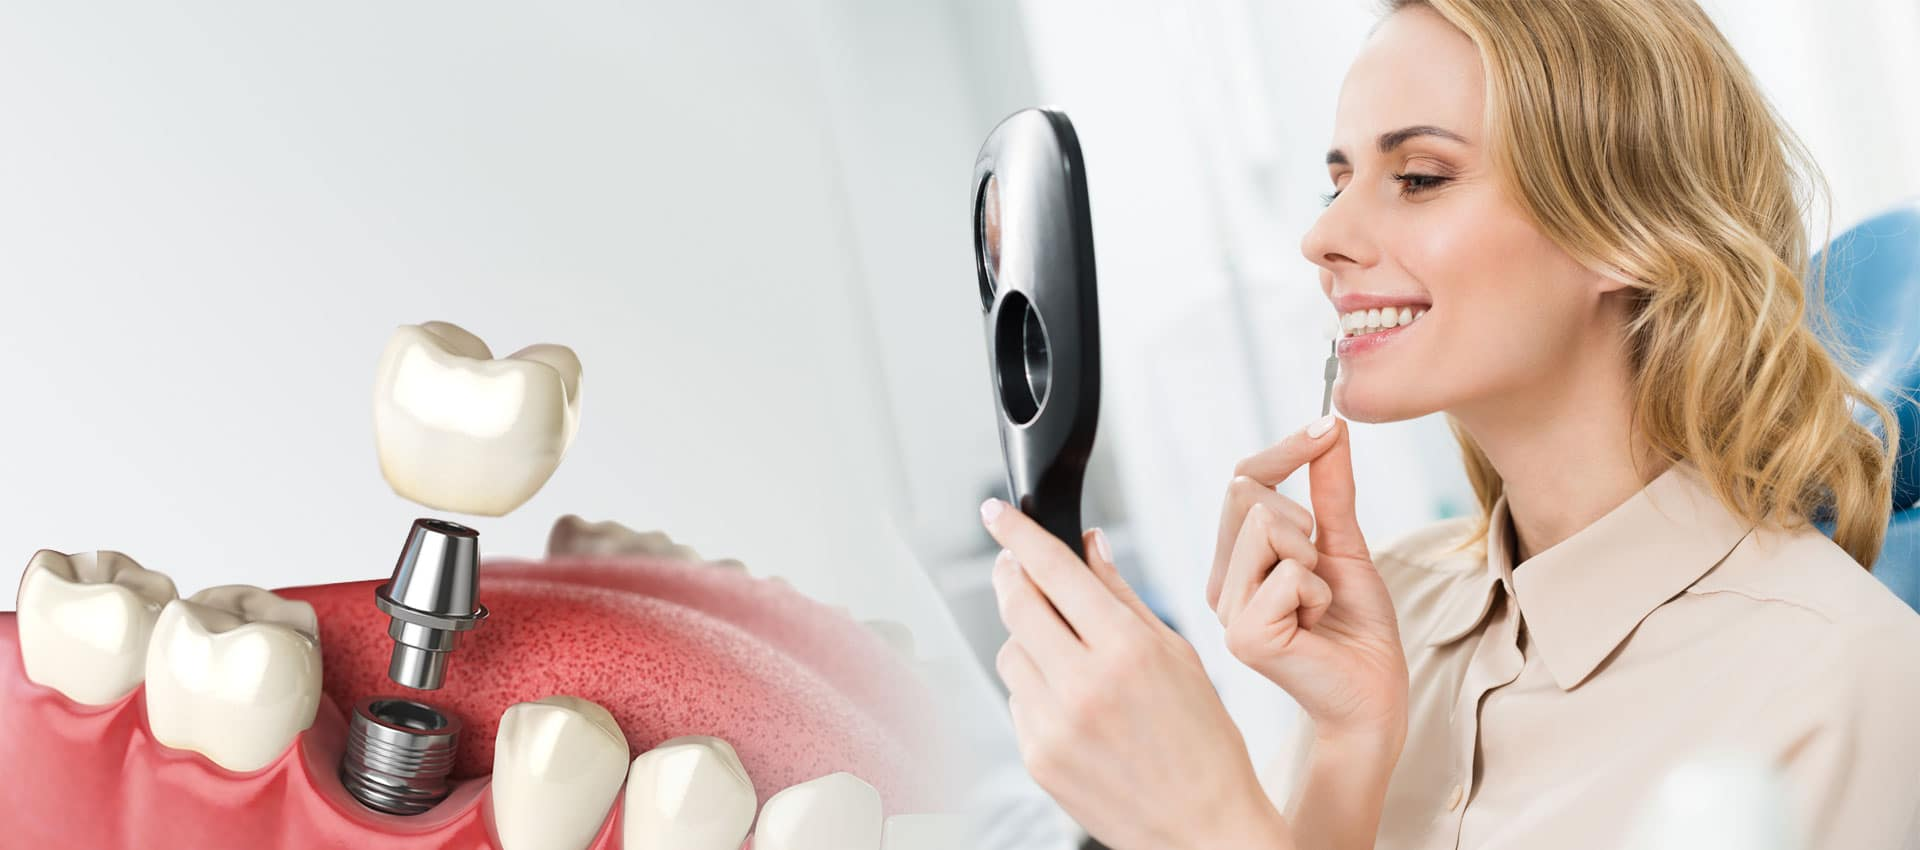 dental clinic in beverly hills